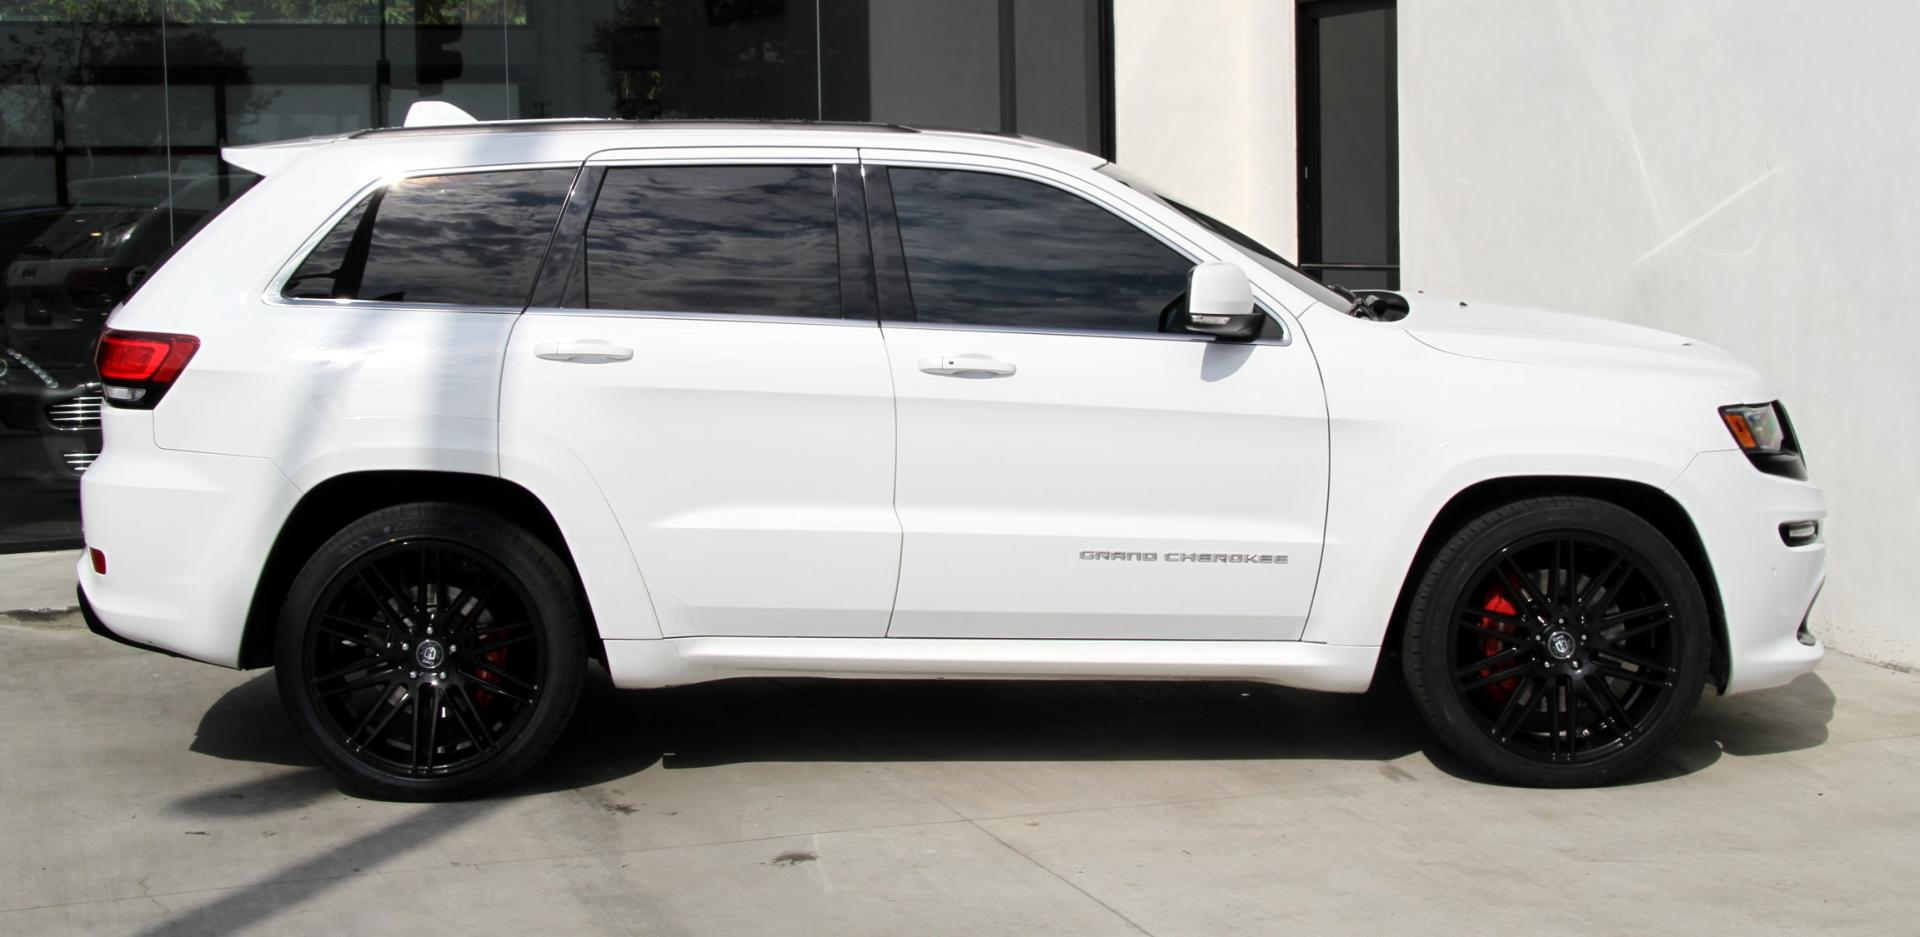 Used Suv For Sale Near Me >> 2014 Jeep Grand Cherokee SRT 4x4 Stock # 5976 for sale ...